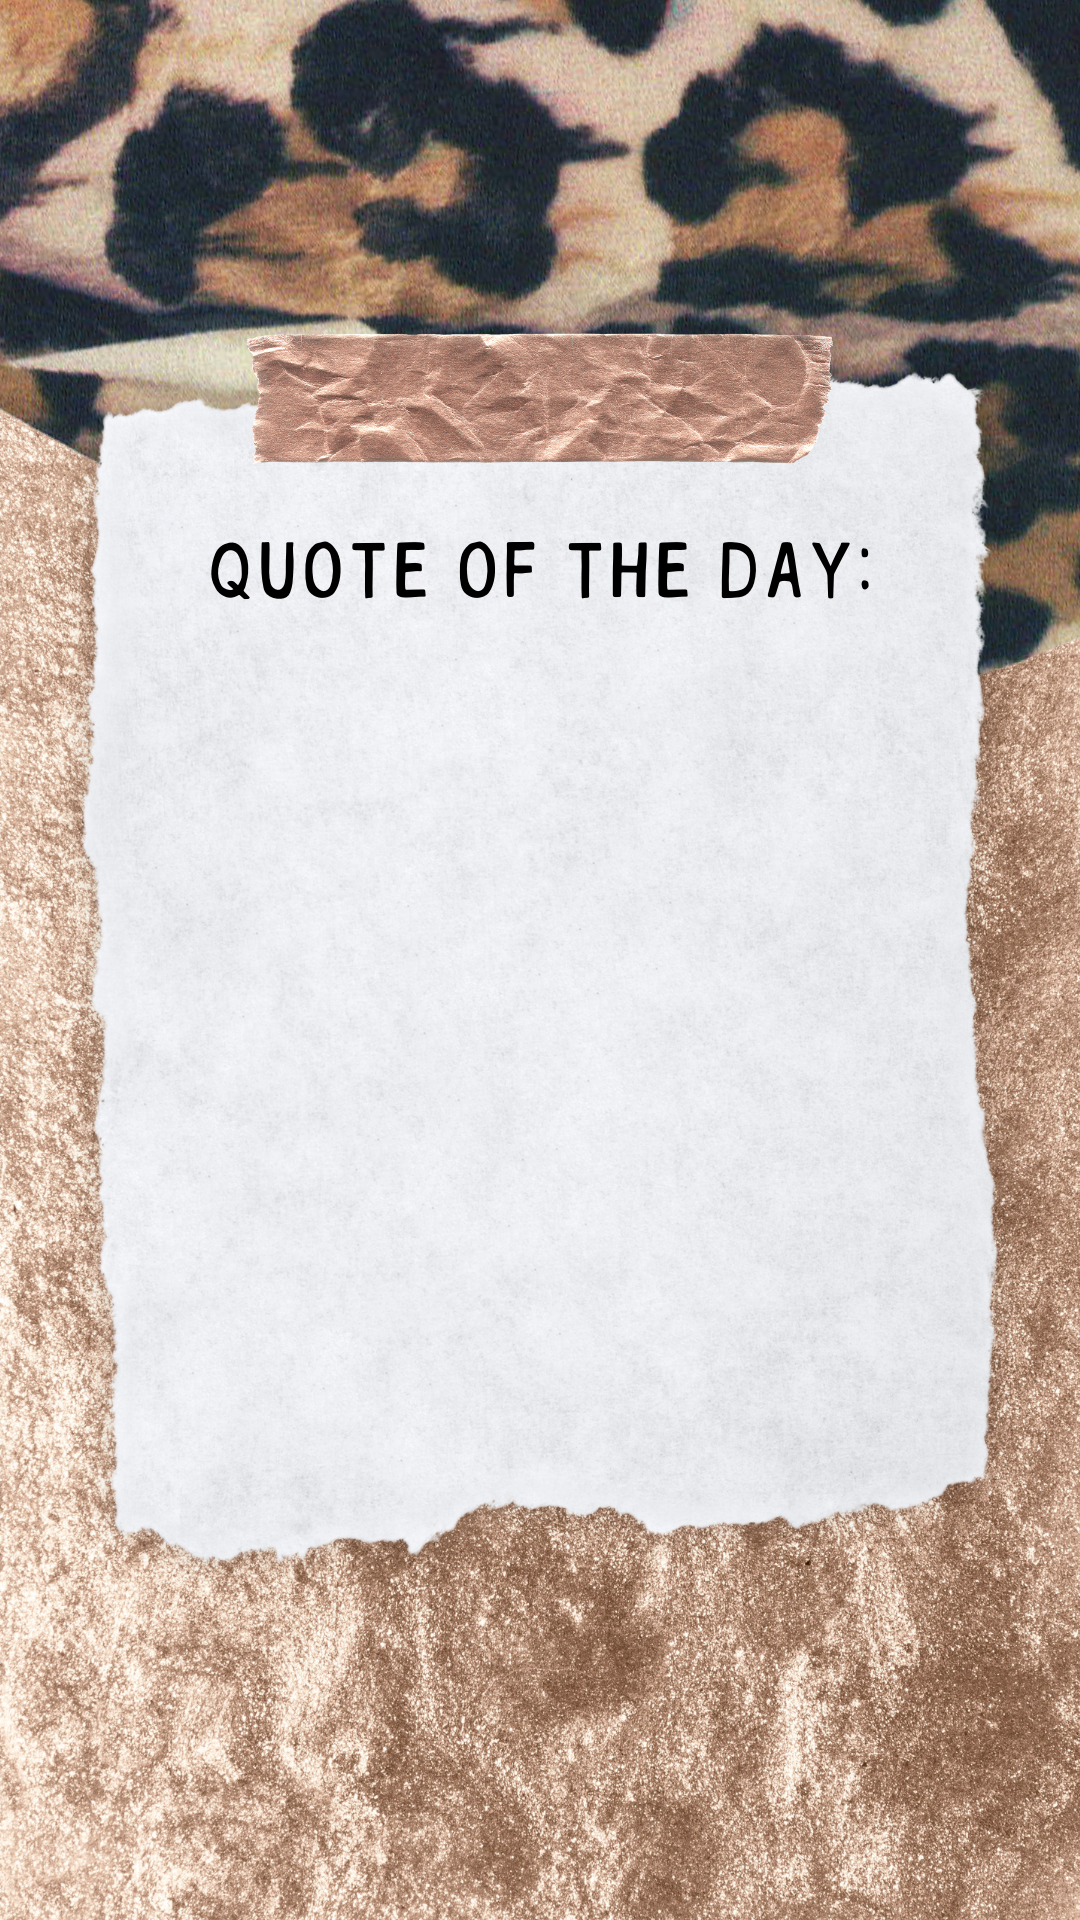 Leopard Quote Story.png